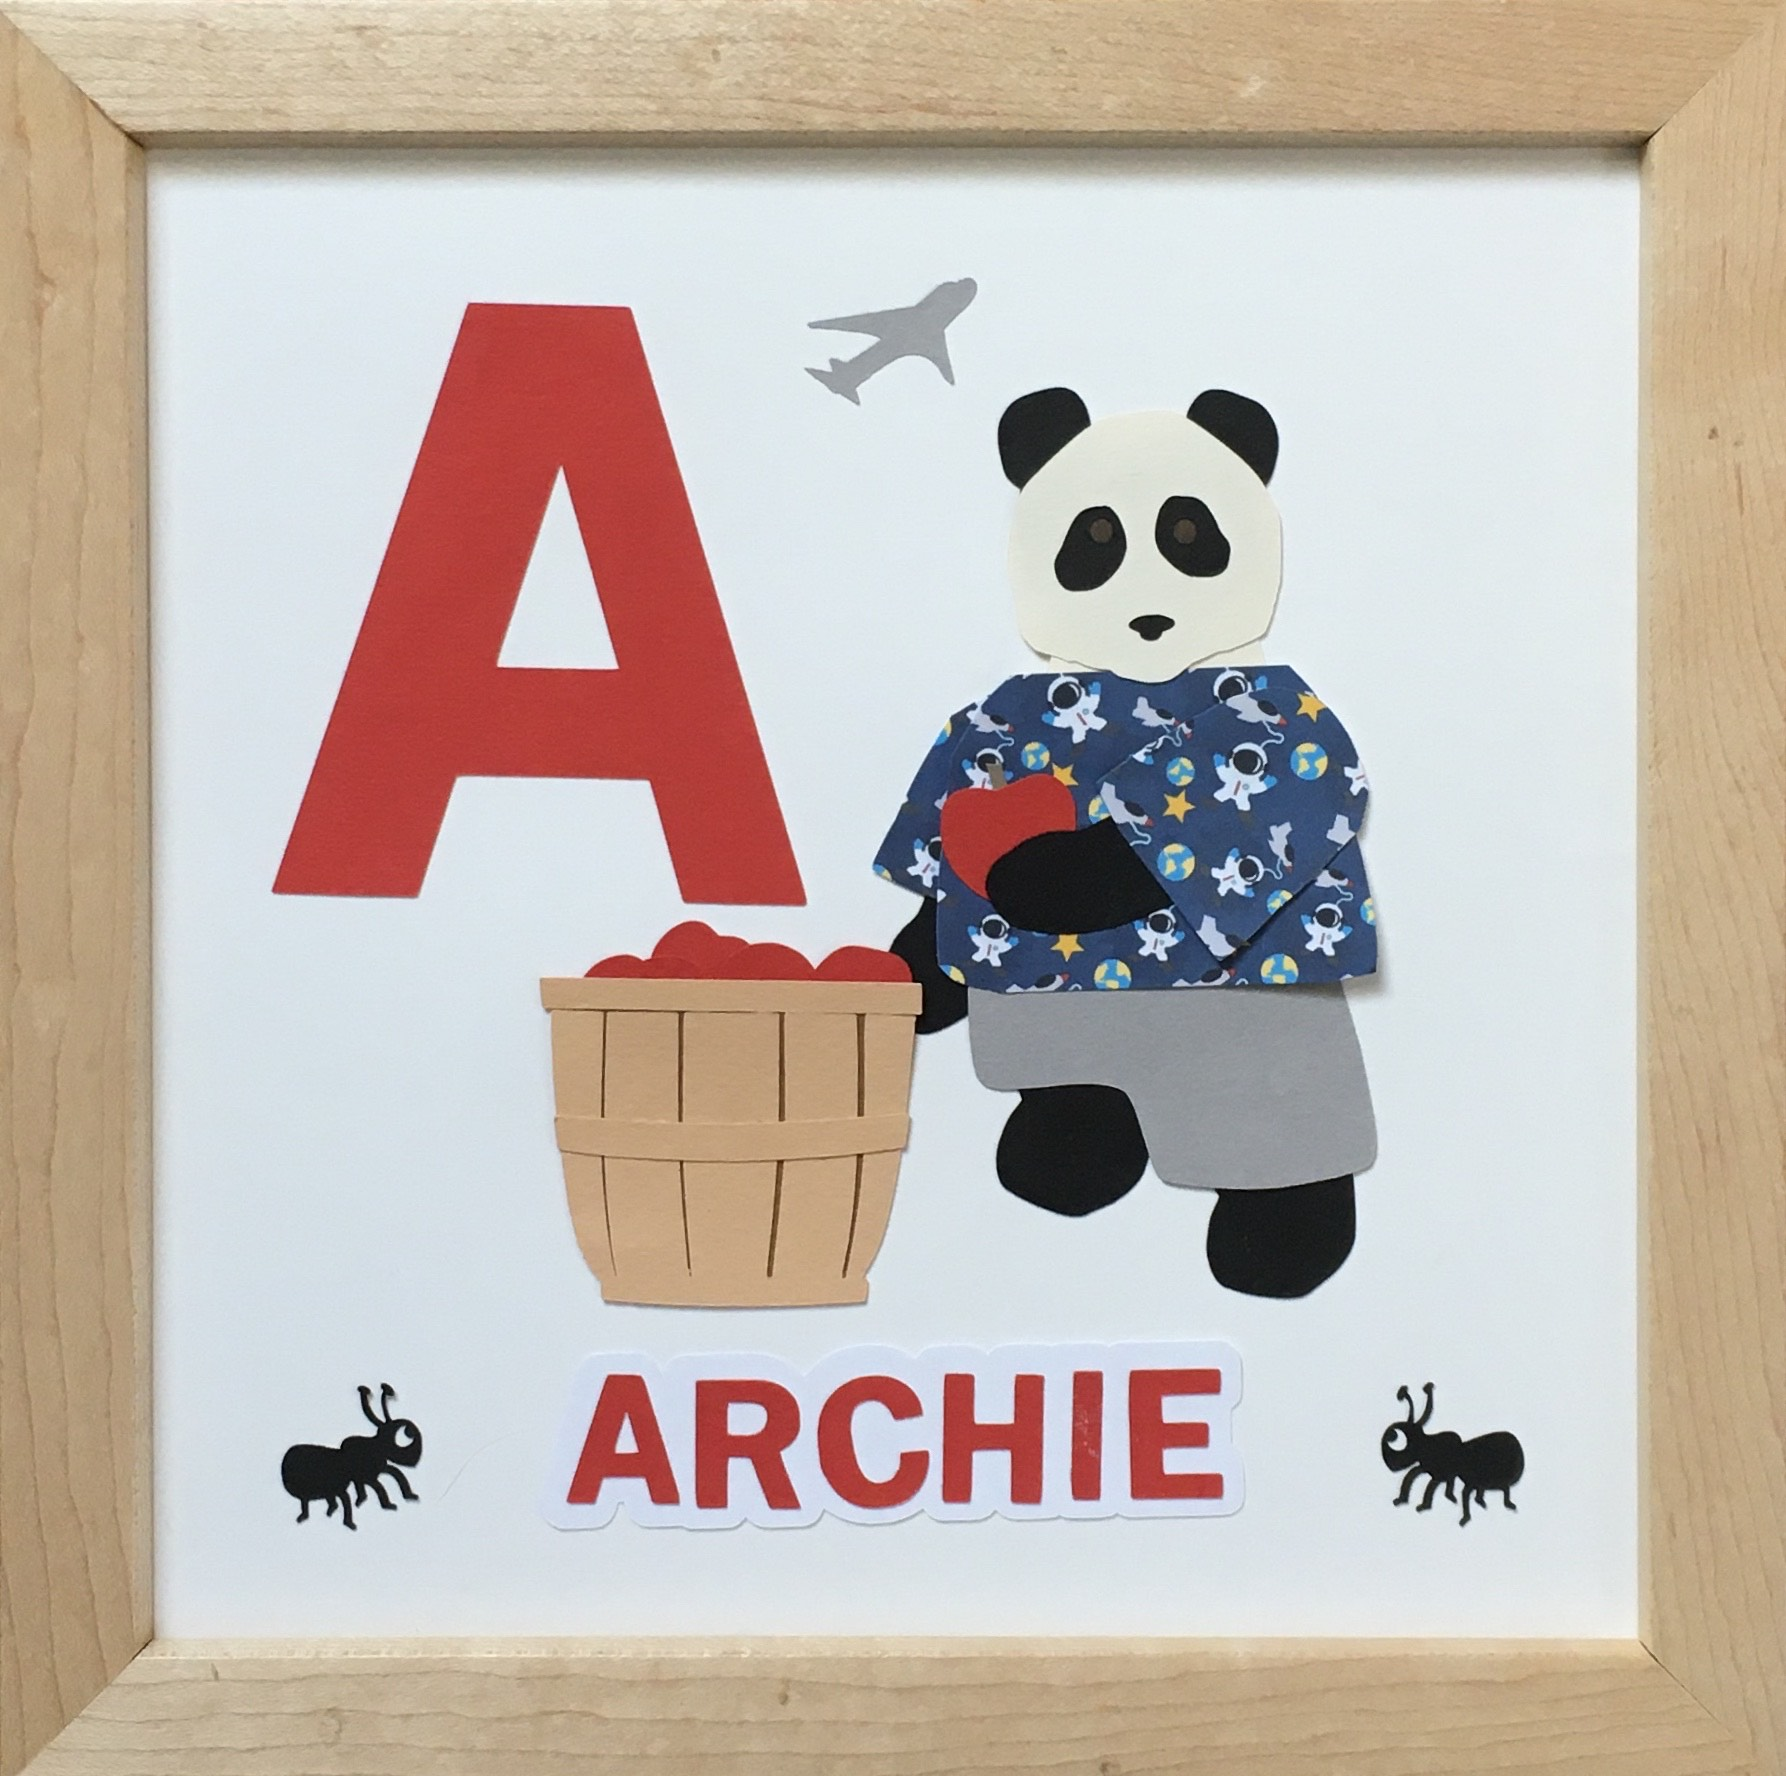 A for Archie, Panda with ants, apples, airplane, and an astronaut shirt